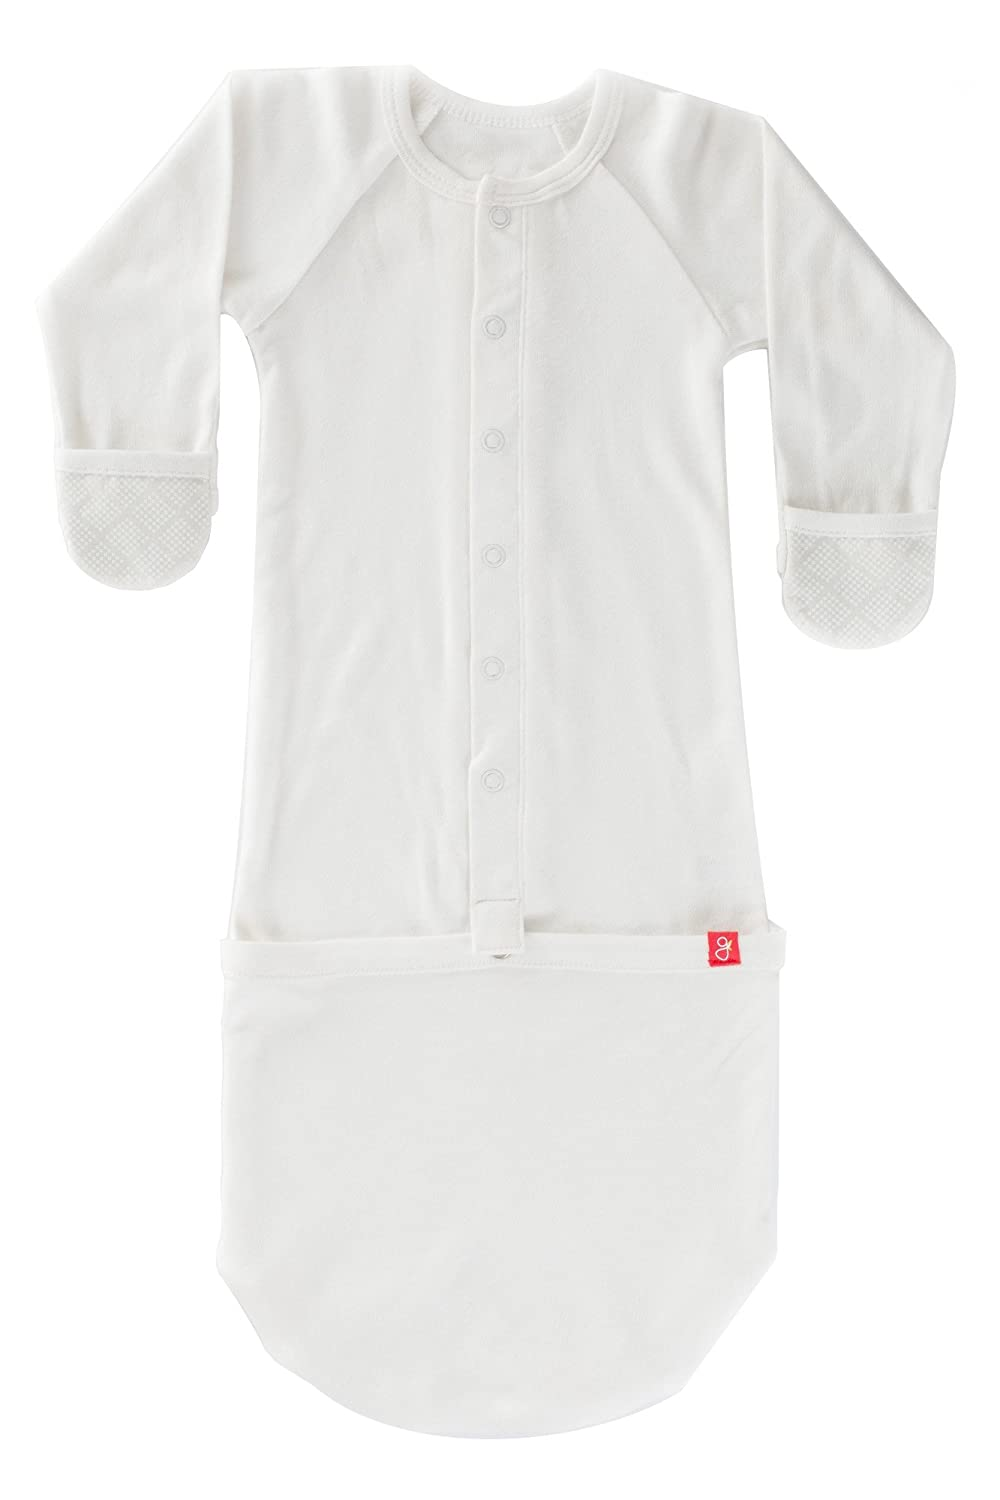 Goumikids Goumijamms Organic Smart Baby Gown, With No Scratch Mitts and Foot Pockets With Easy Diaper Change 706